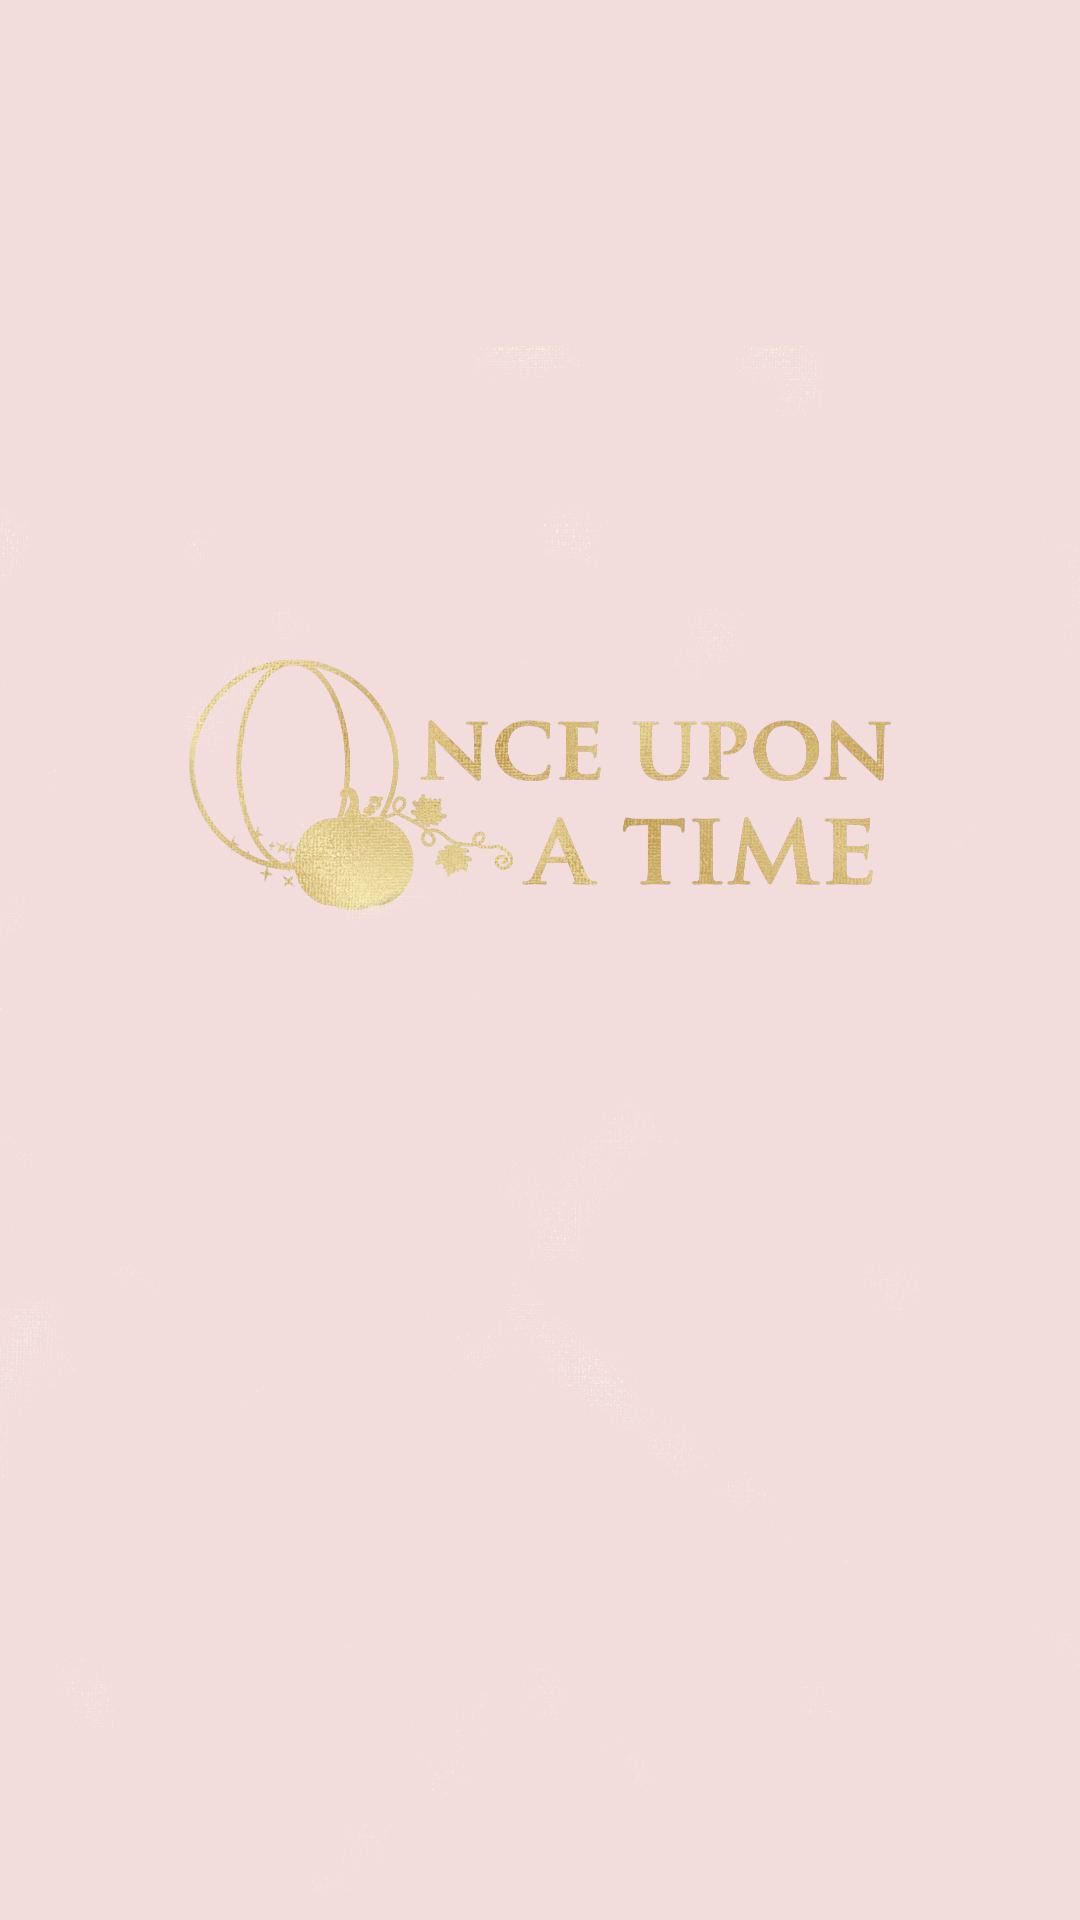 Aesthetic Quotes Disney Wallpapers Wallpaper Cave